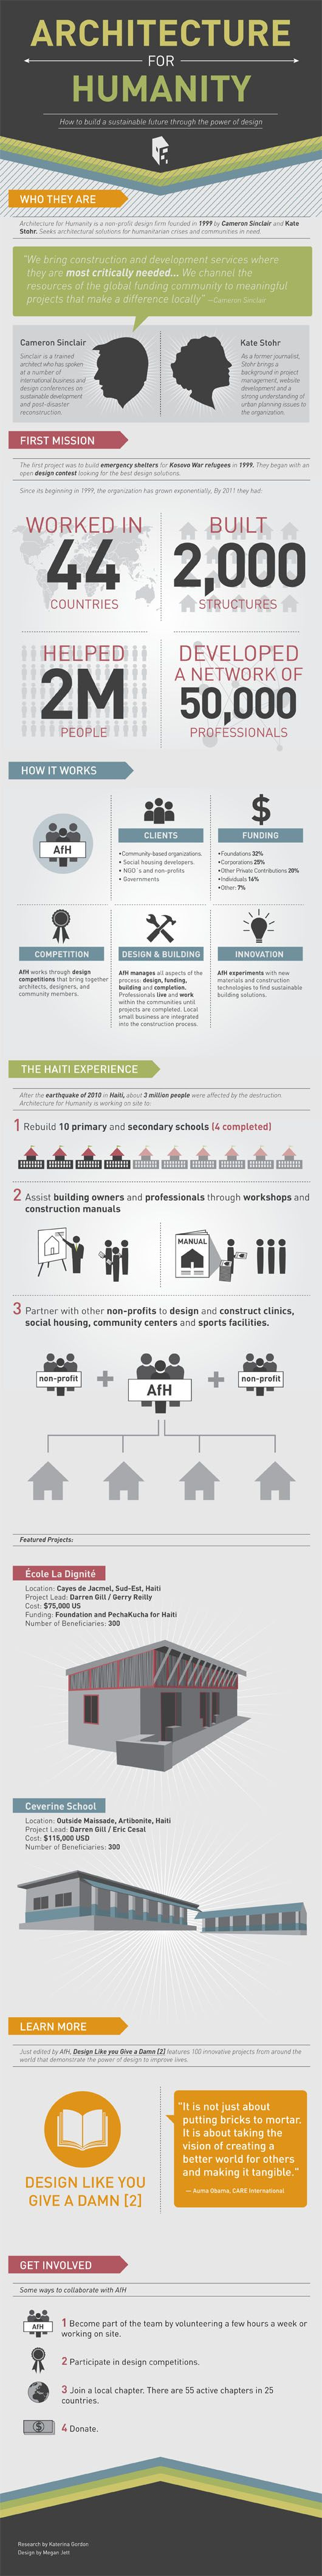 Architecture for Humanity is the subject of this dedicated infographic designed by Megan Jett and published by ArchDaily.